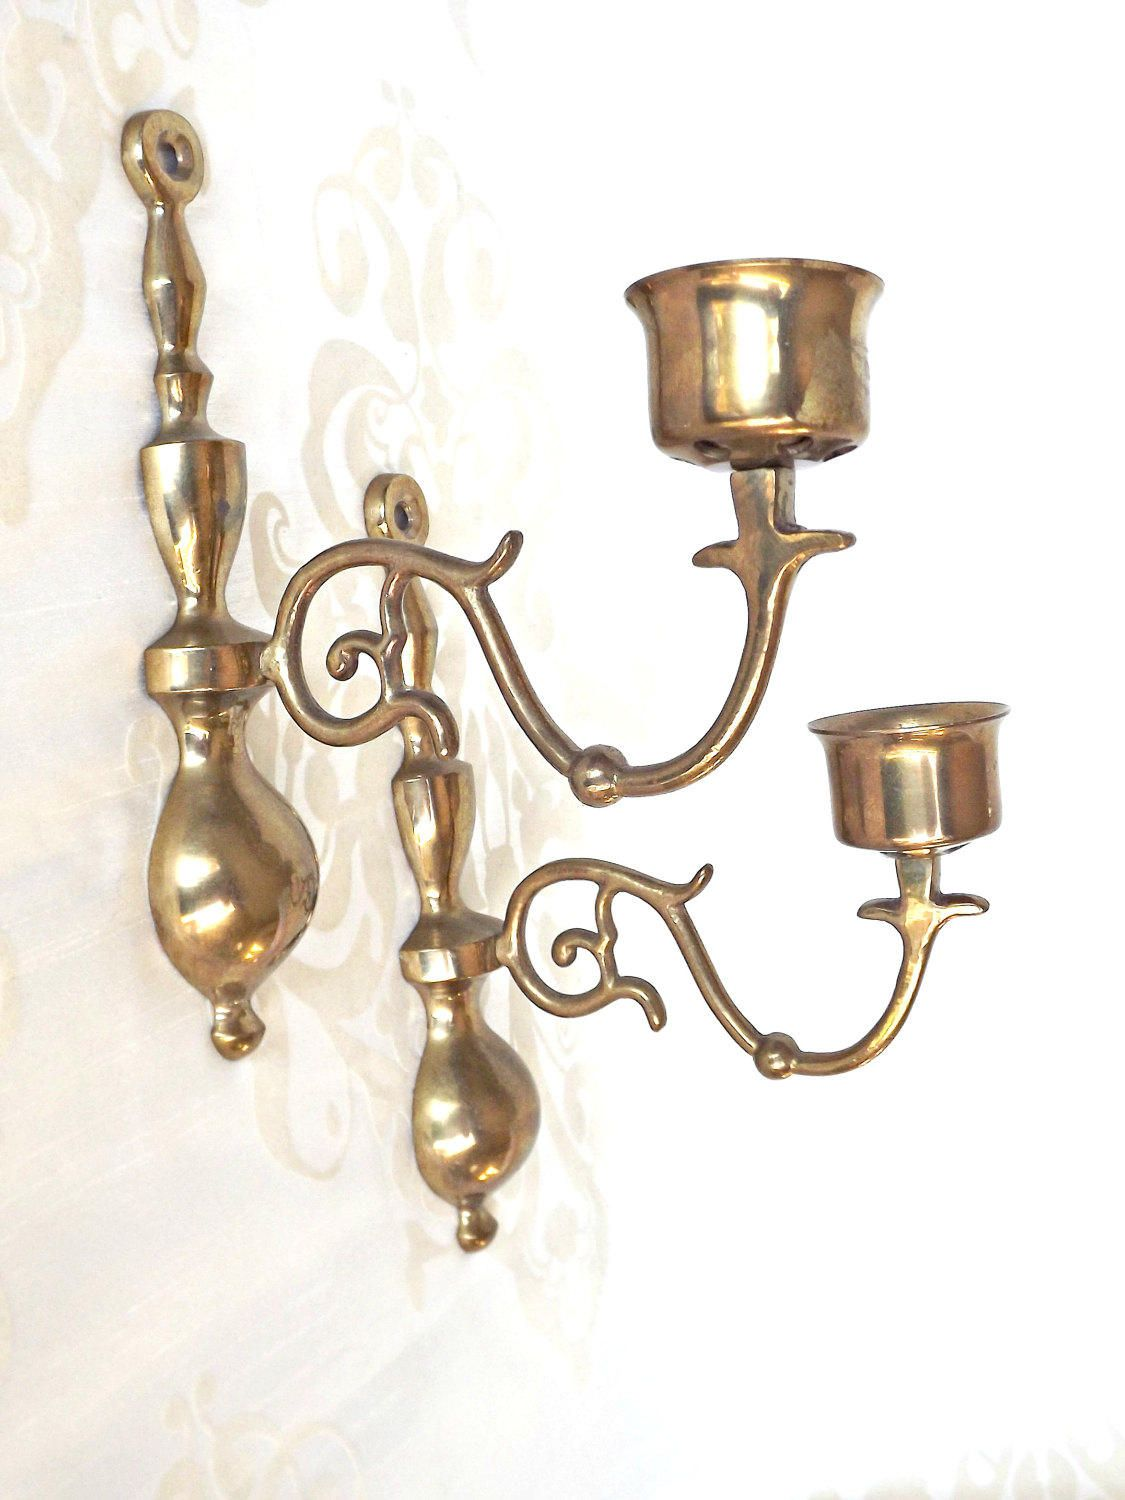 Brass Wall Sconces Hollywood Regency Candle Wall Sconces Vintage